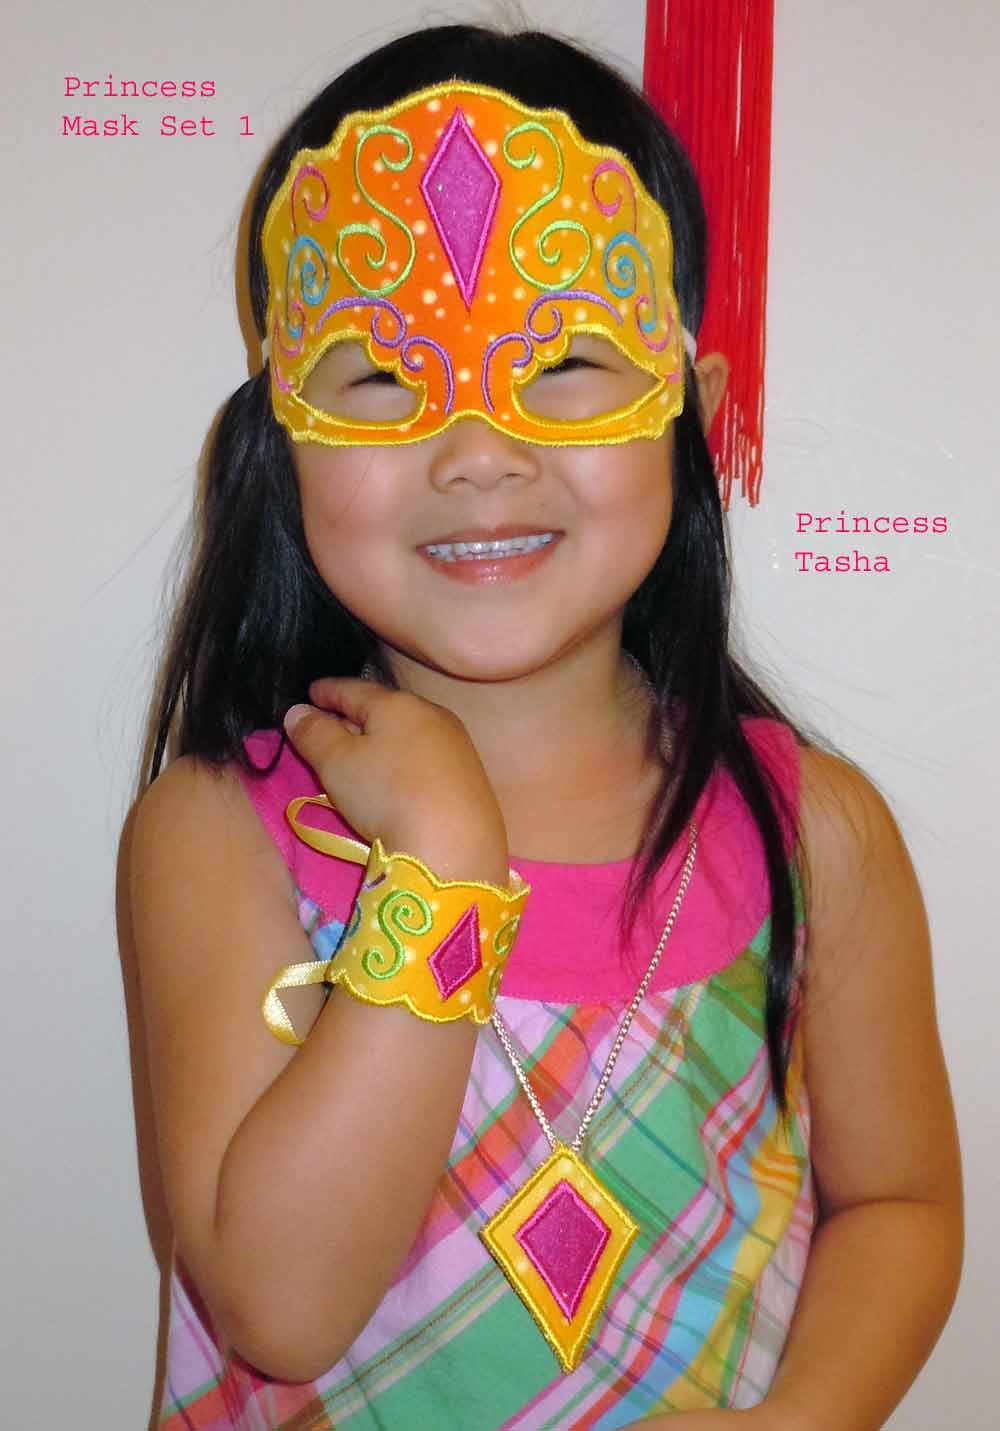 princess-mask-set-1-on-tash.jpg